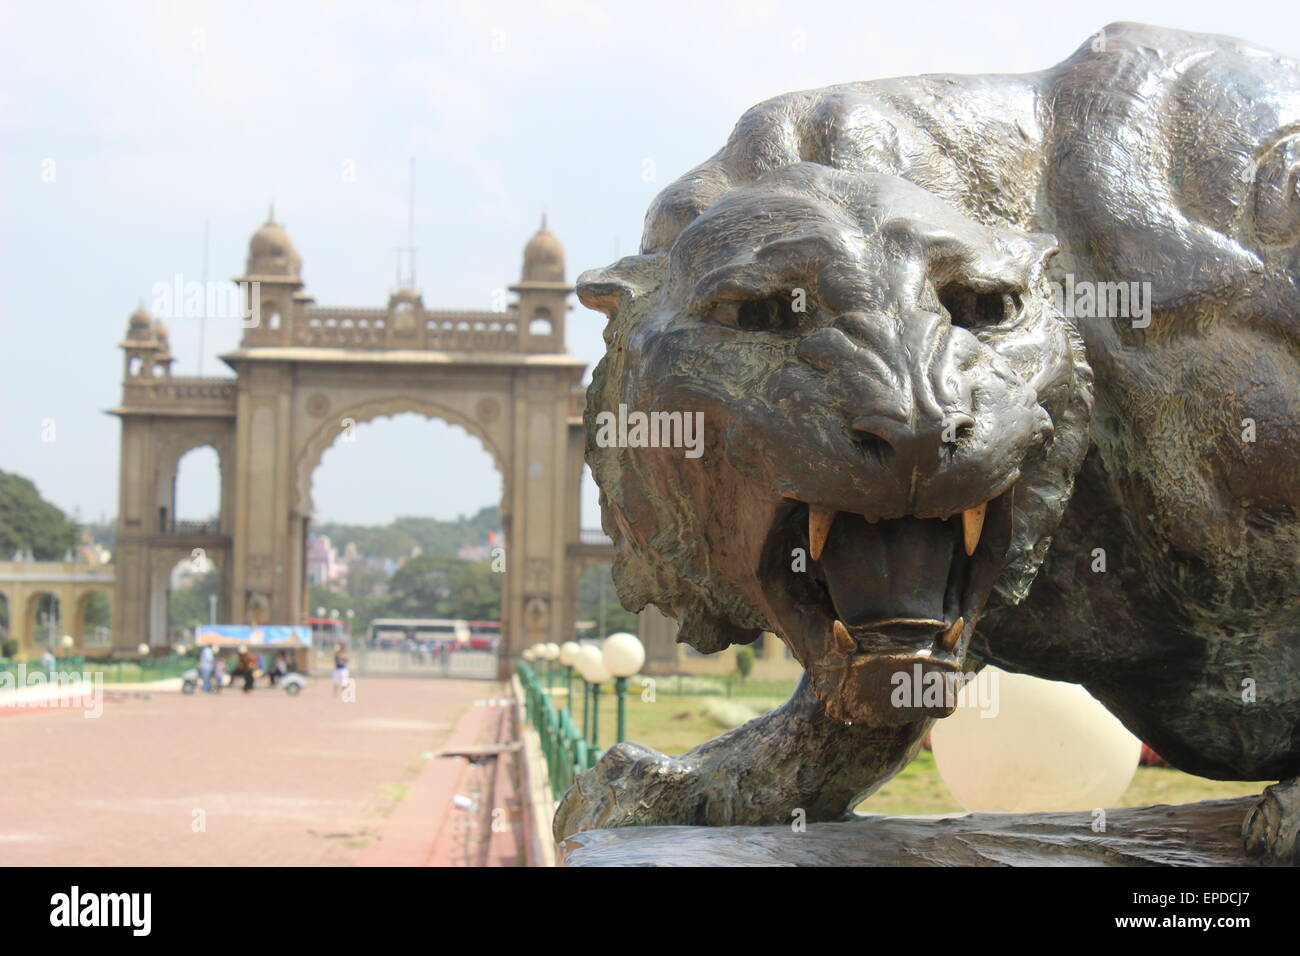 Inside the Maharaja's Palace compound: a scary tiger sculpture - Stock Image